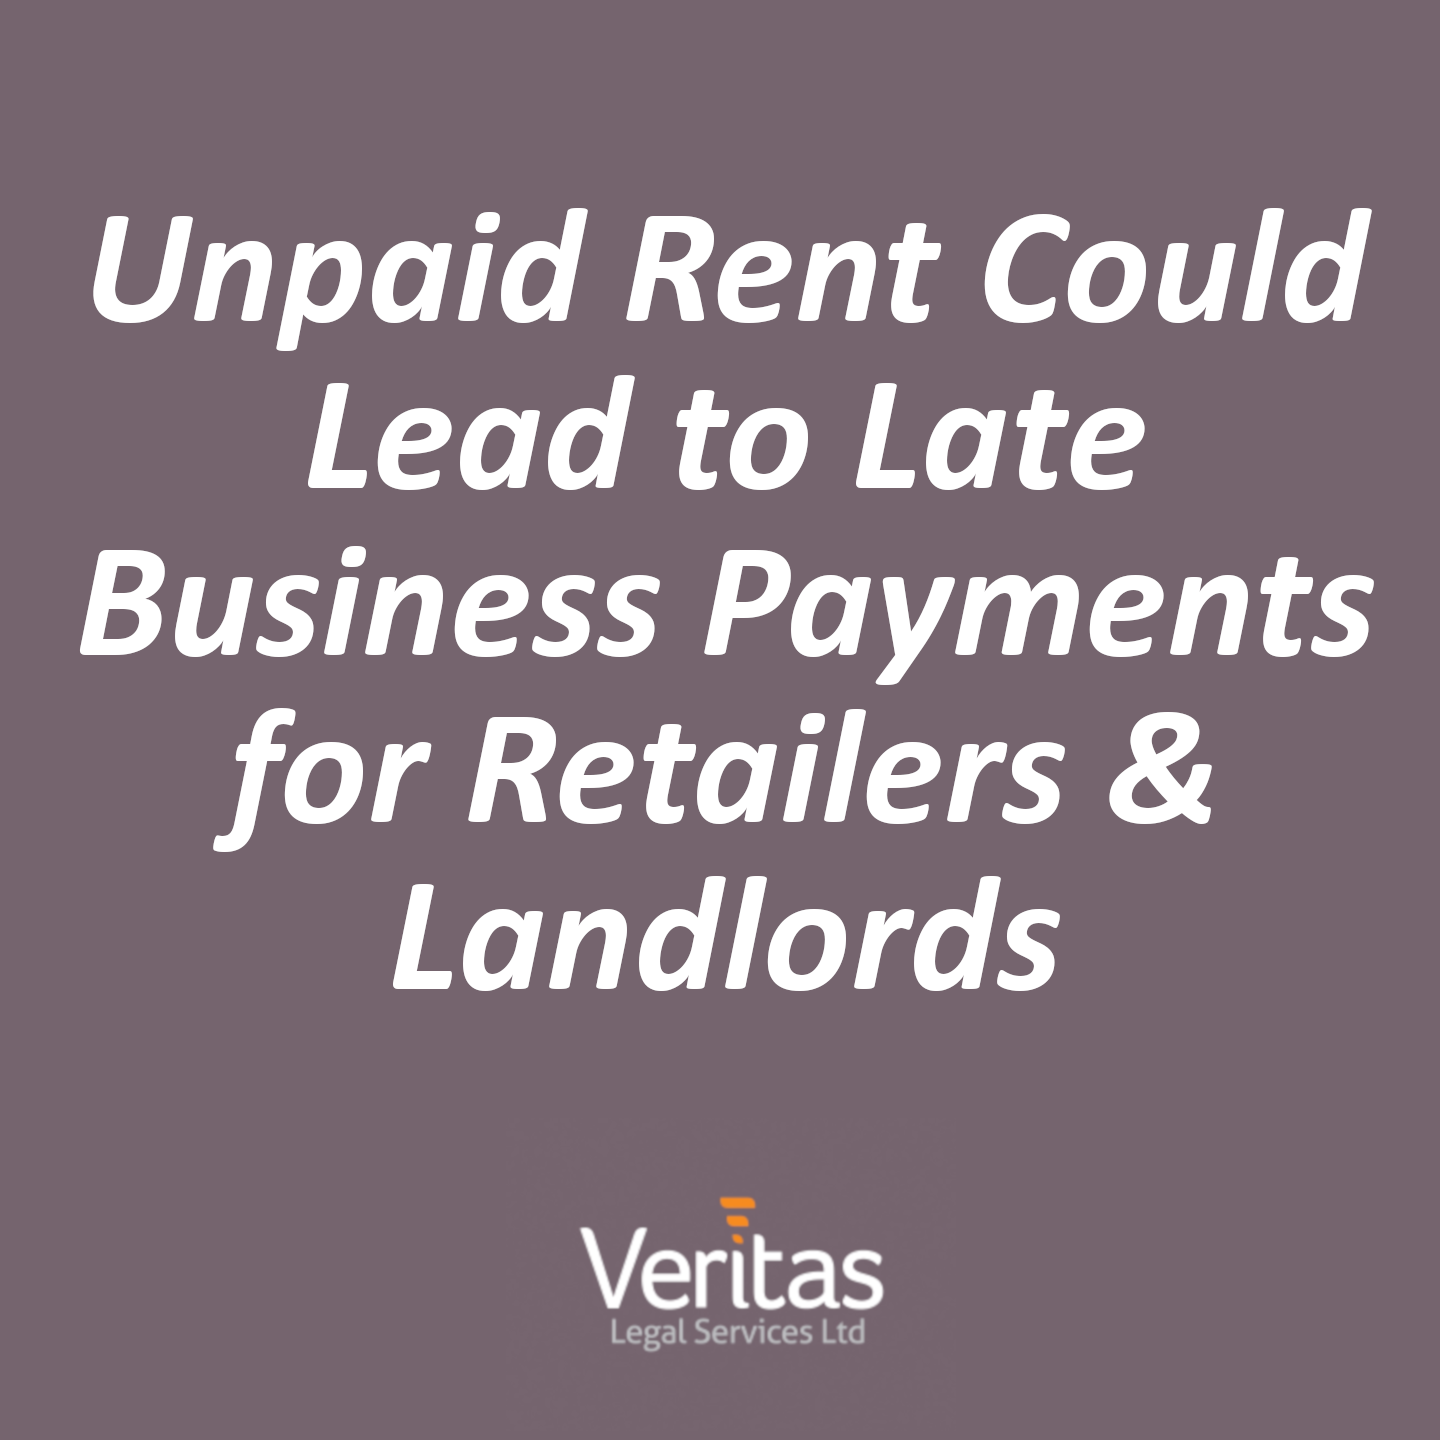 Unpaid Rent Could Lead to Late Business Payments for Retailers & Landlords